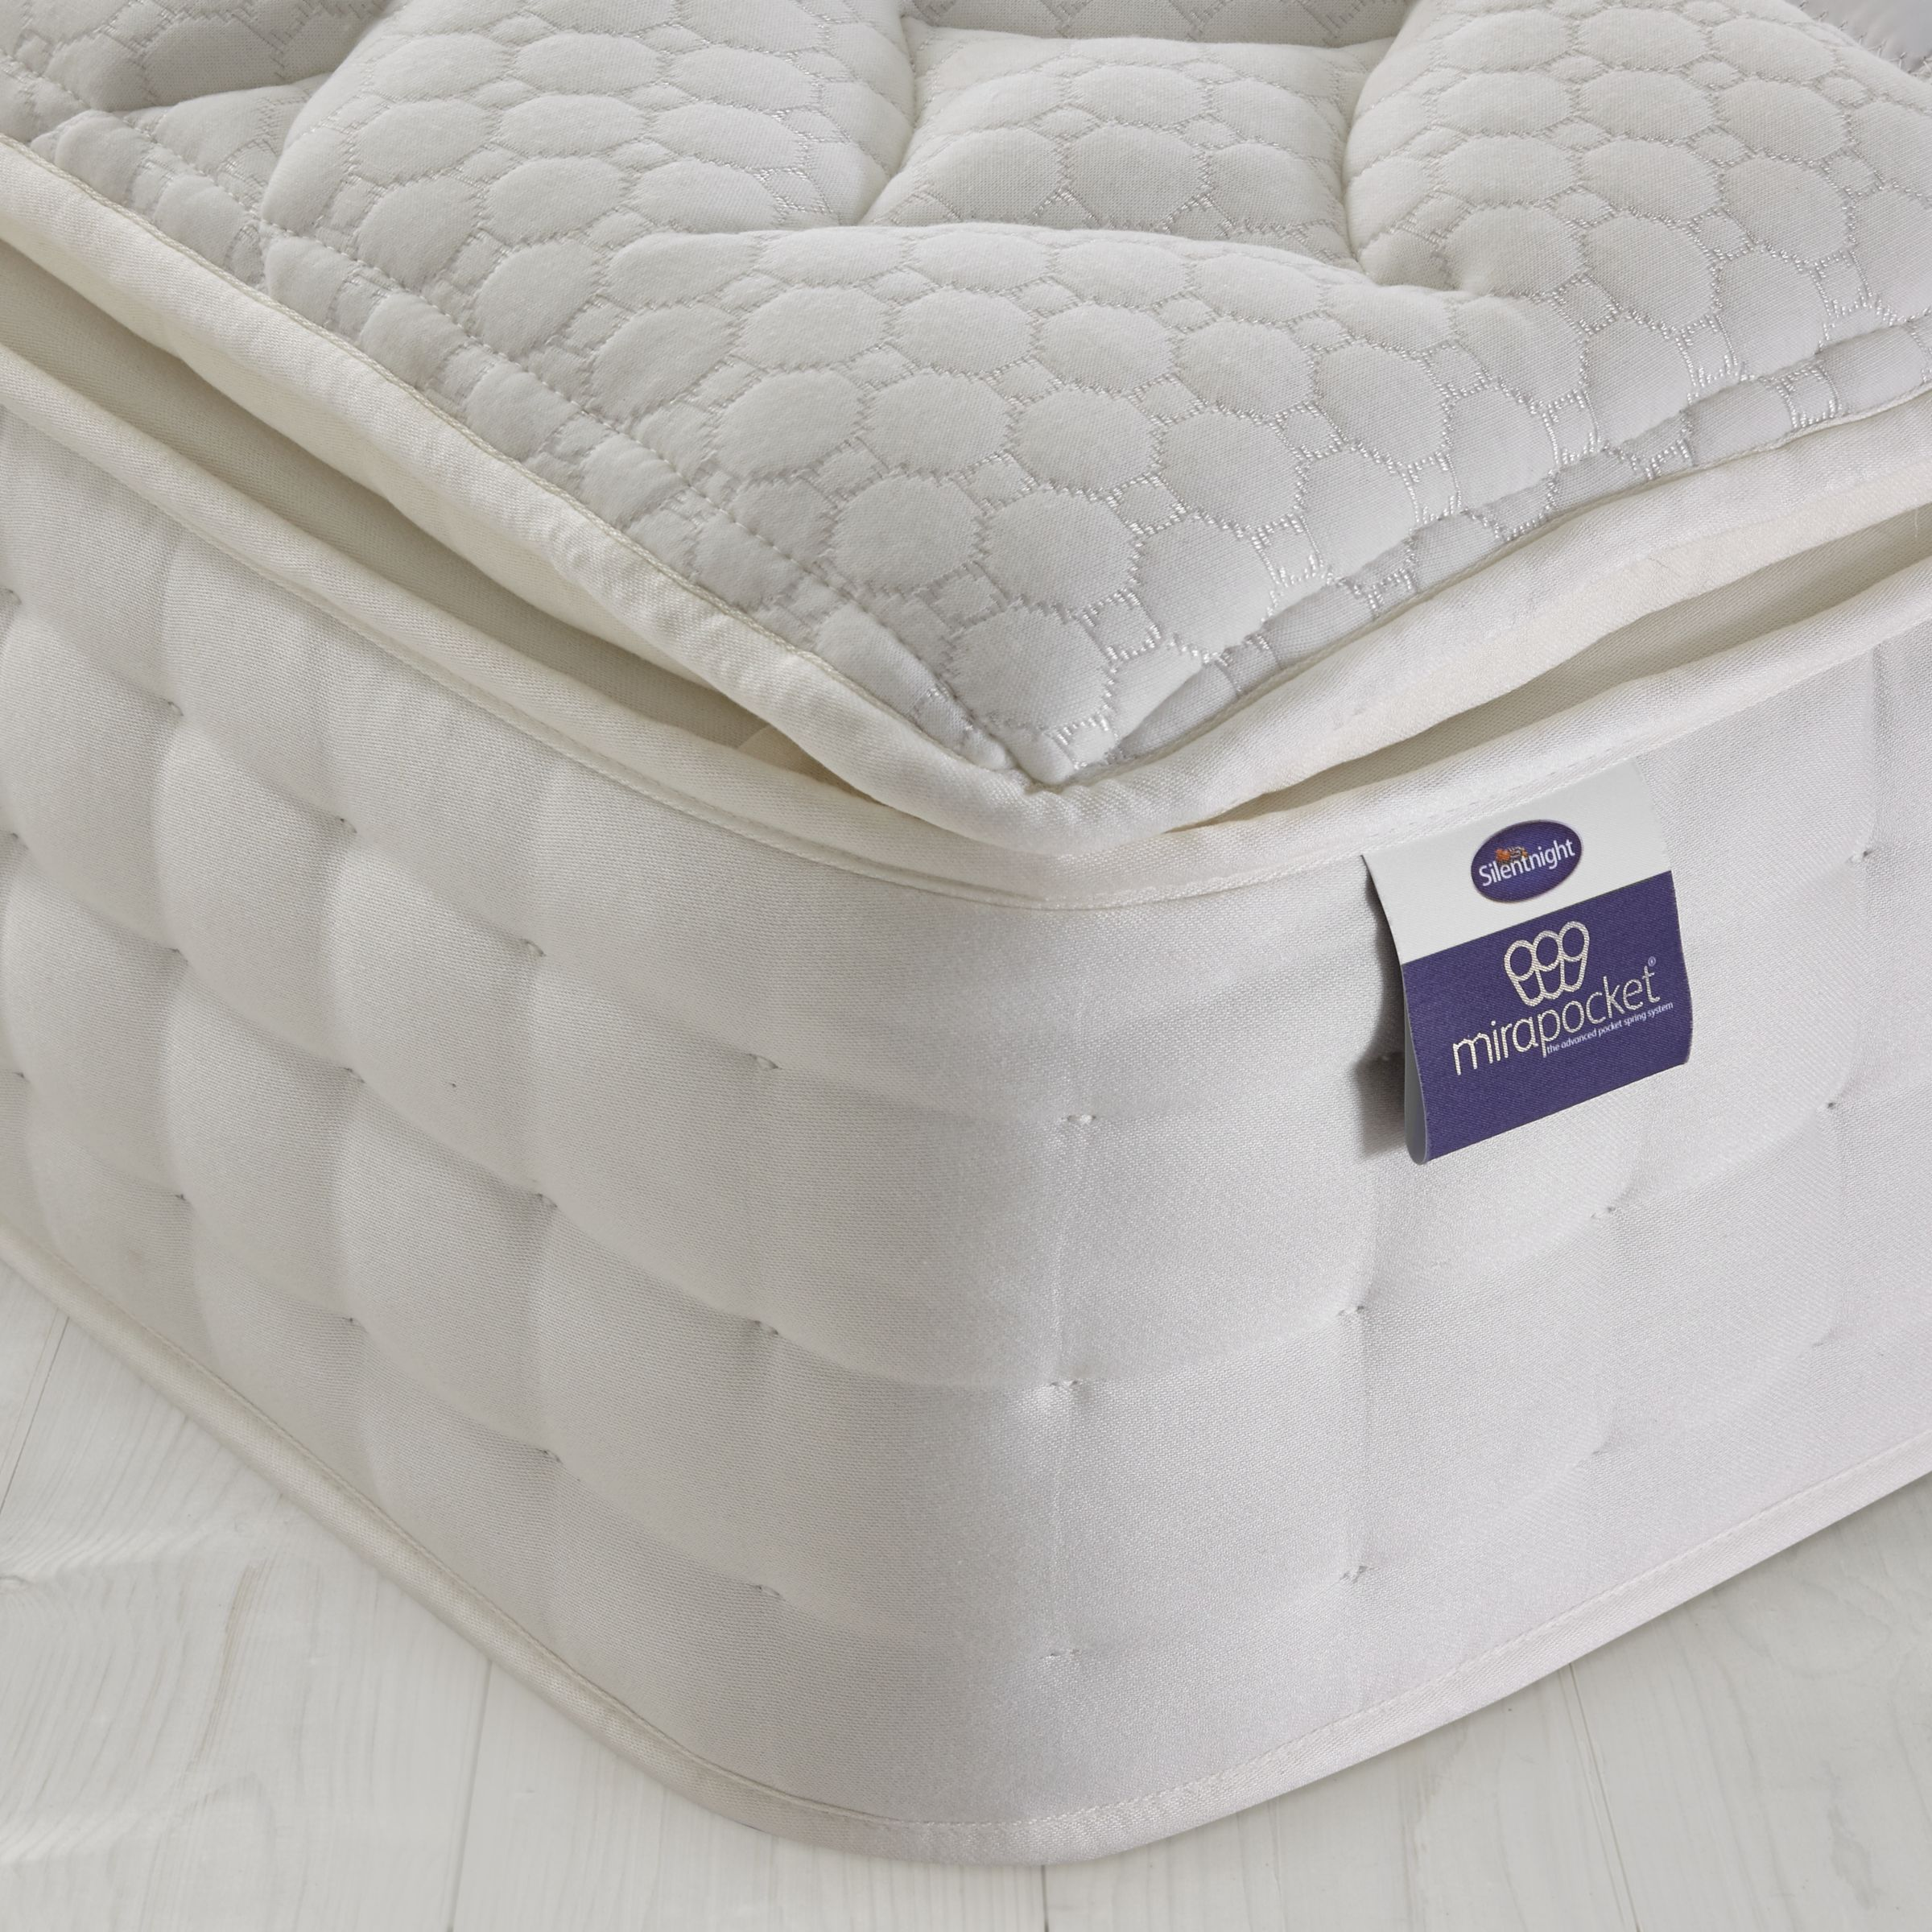 Silentnight Mirapocket 2000 Latex Mattress, Double